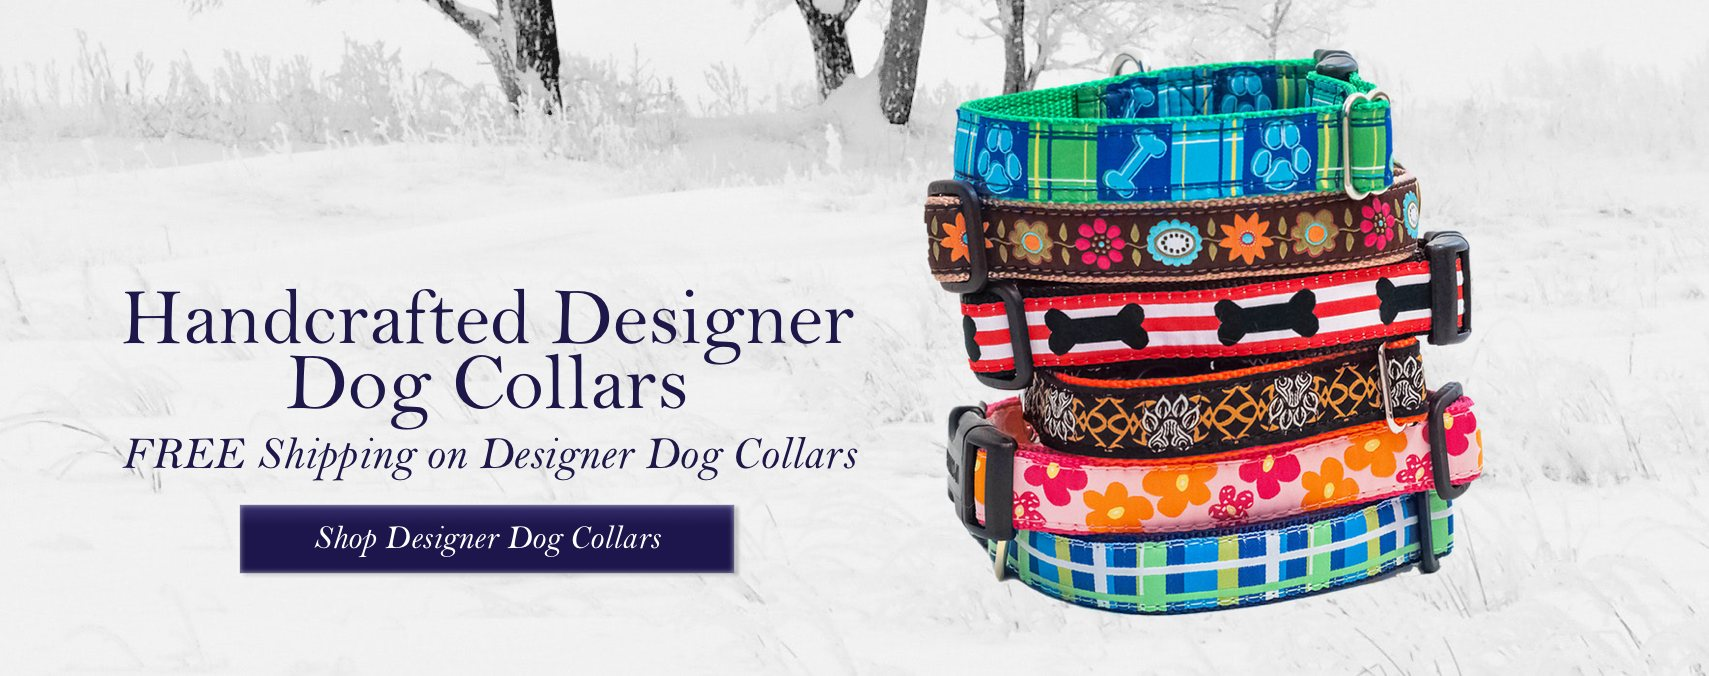 Shop Designer Dog Collars